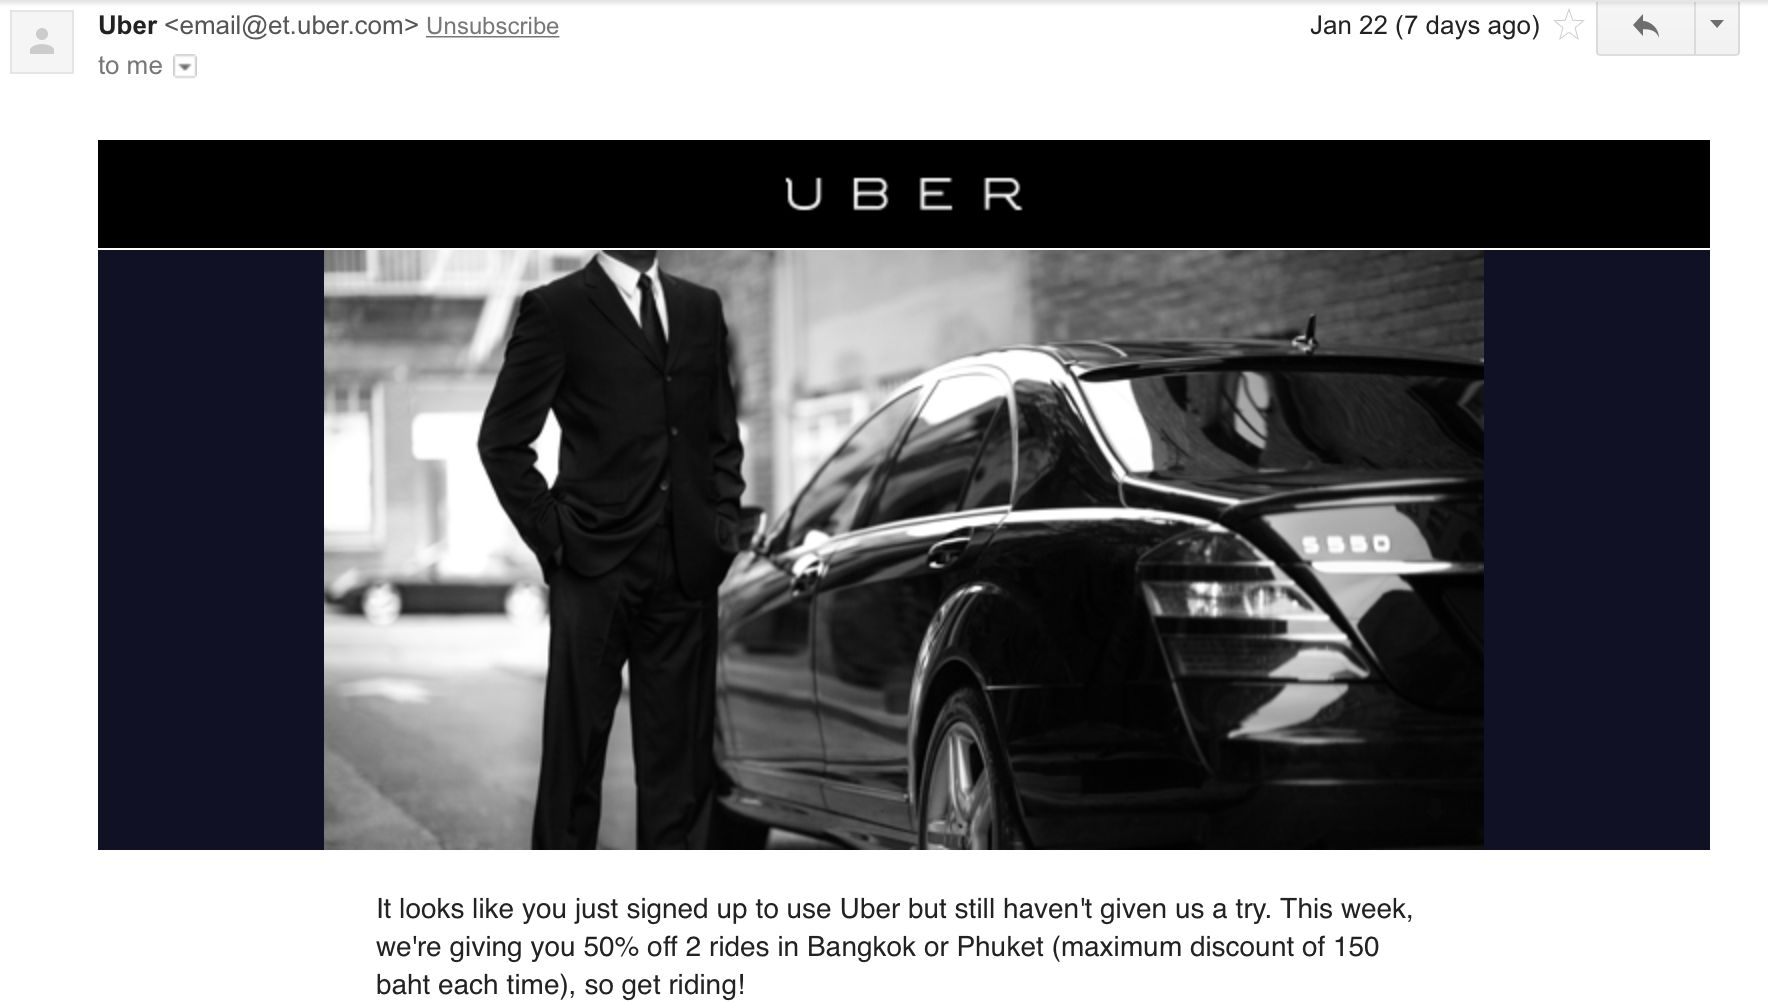 uber email